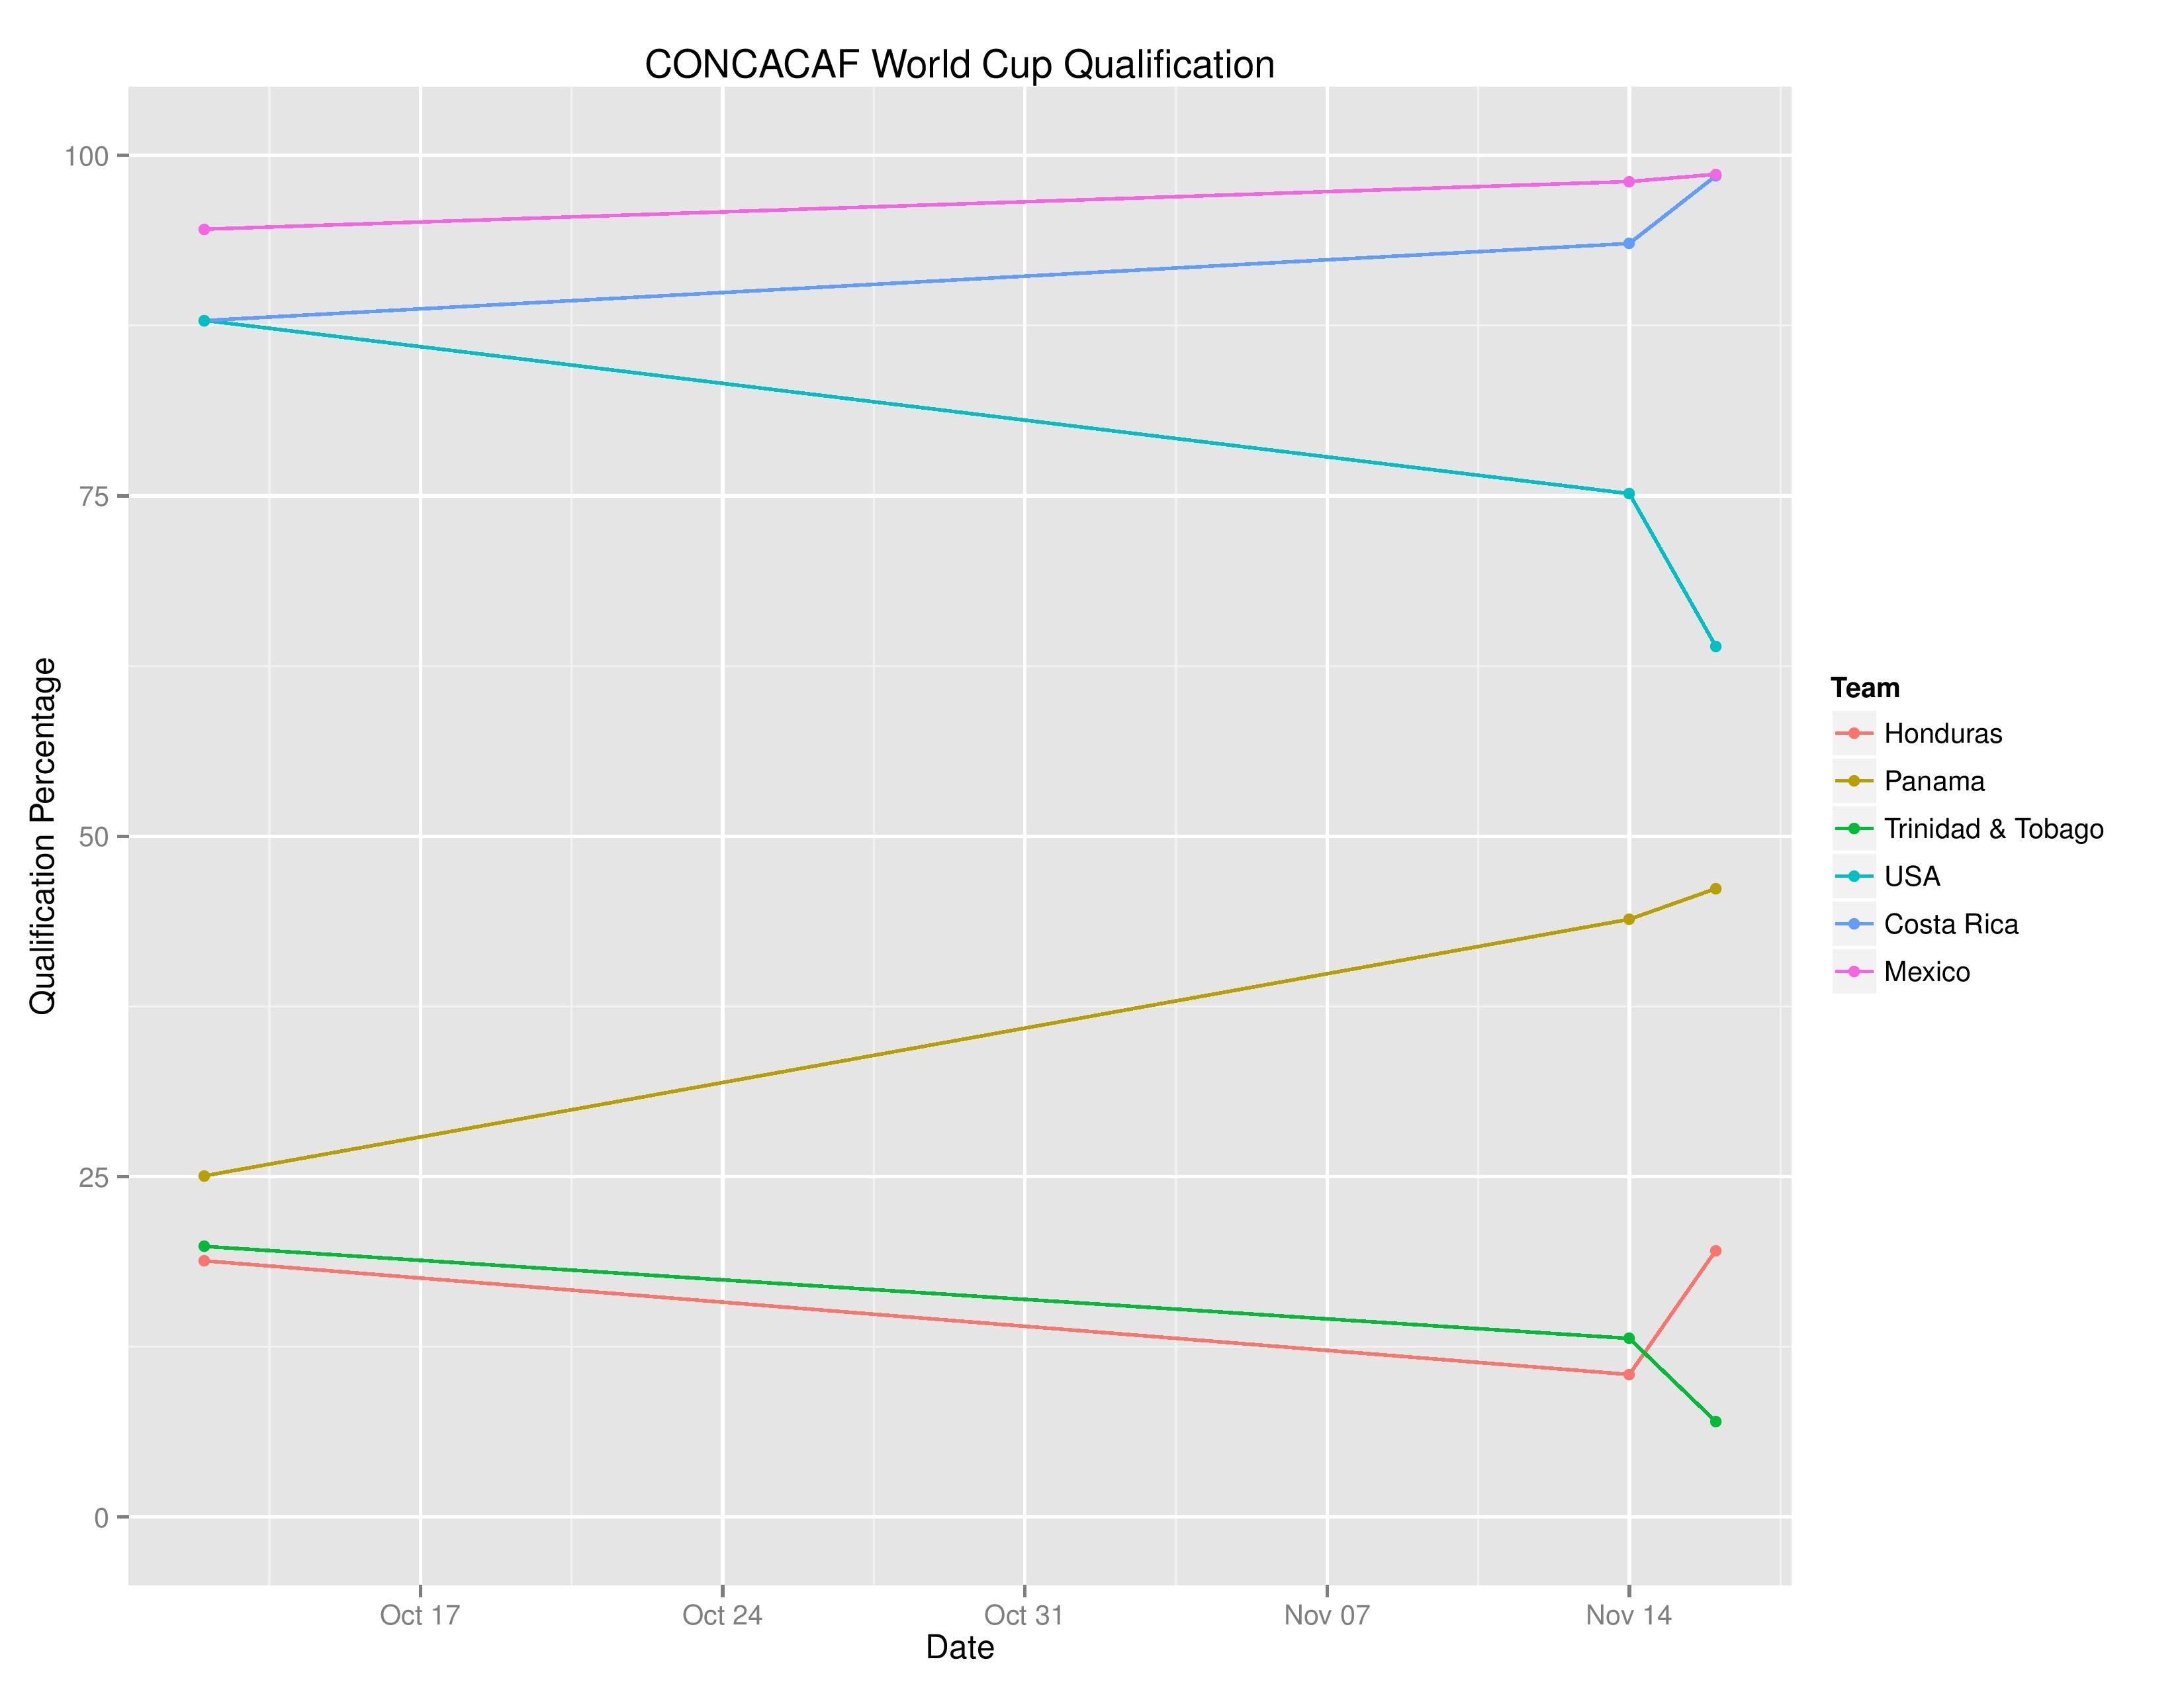 worldcupqualification_graphs2016-11-16-page-006